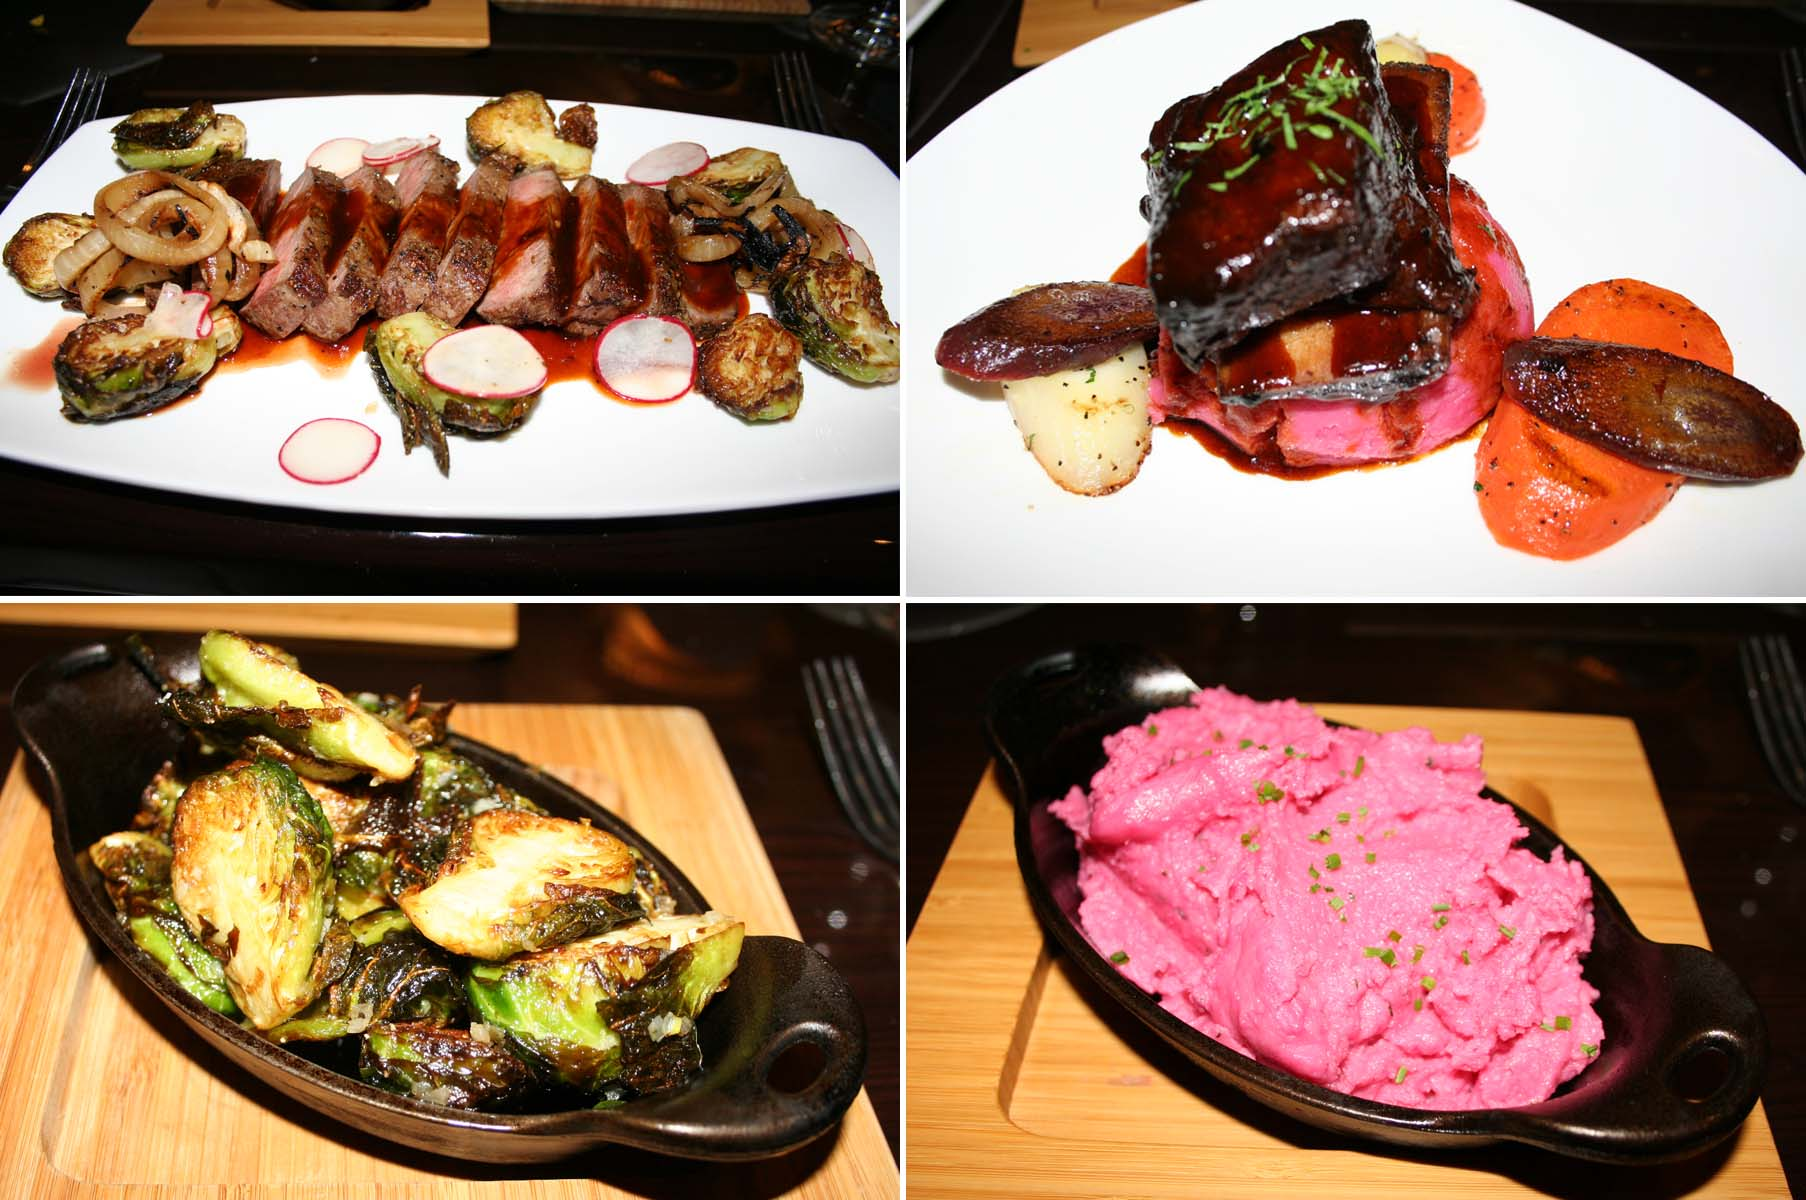 Noelia's entrees include strip loin (clockwise from top left) and malt-braised short rib, while the better dishes were the beet-infused mashed potatoes and the crispy Brussels sprouts. (Photos: Mark Heckathorn/DC on Heels)